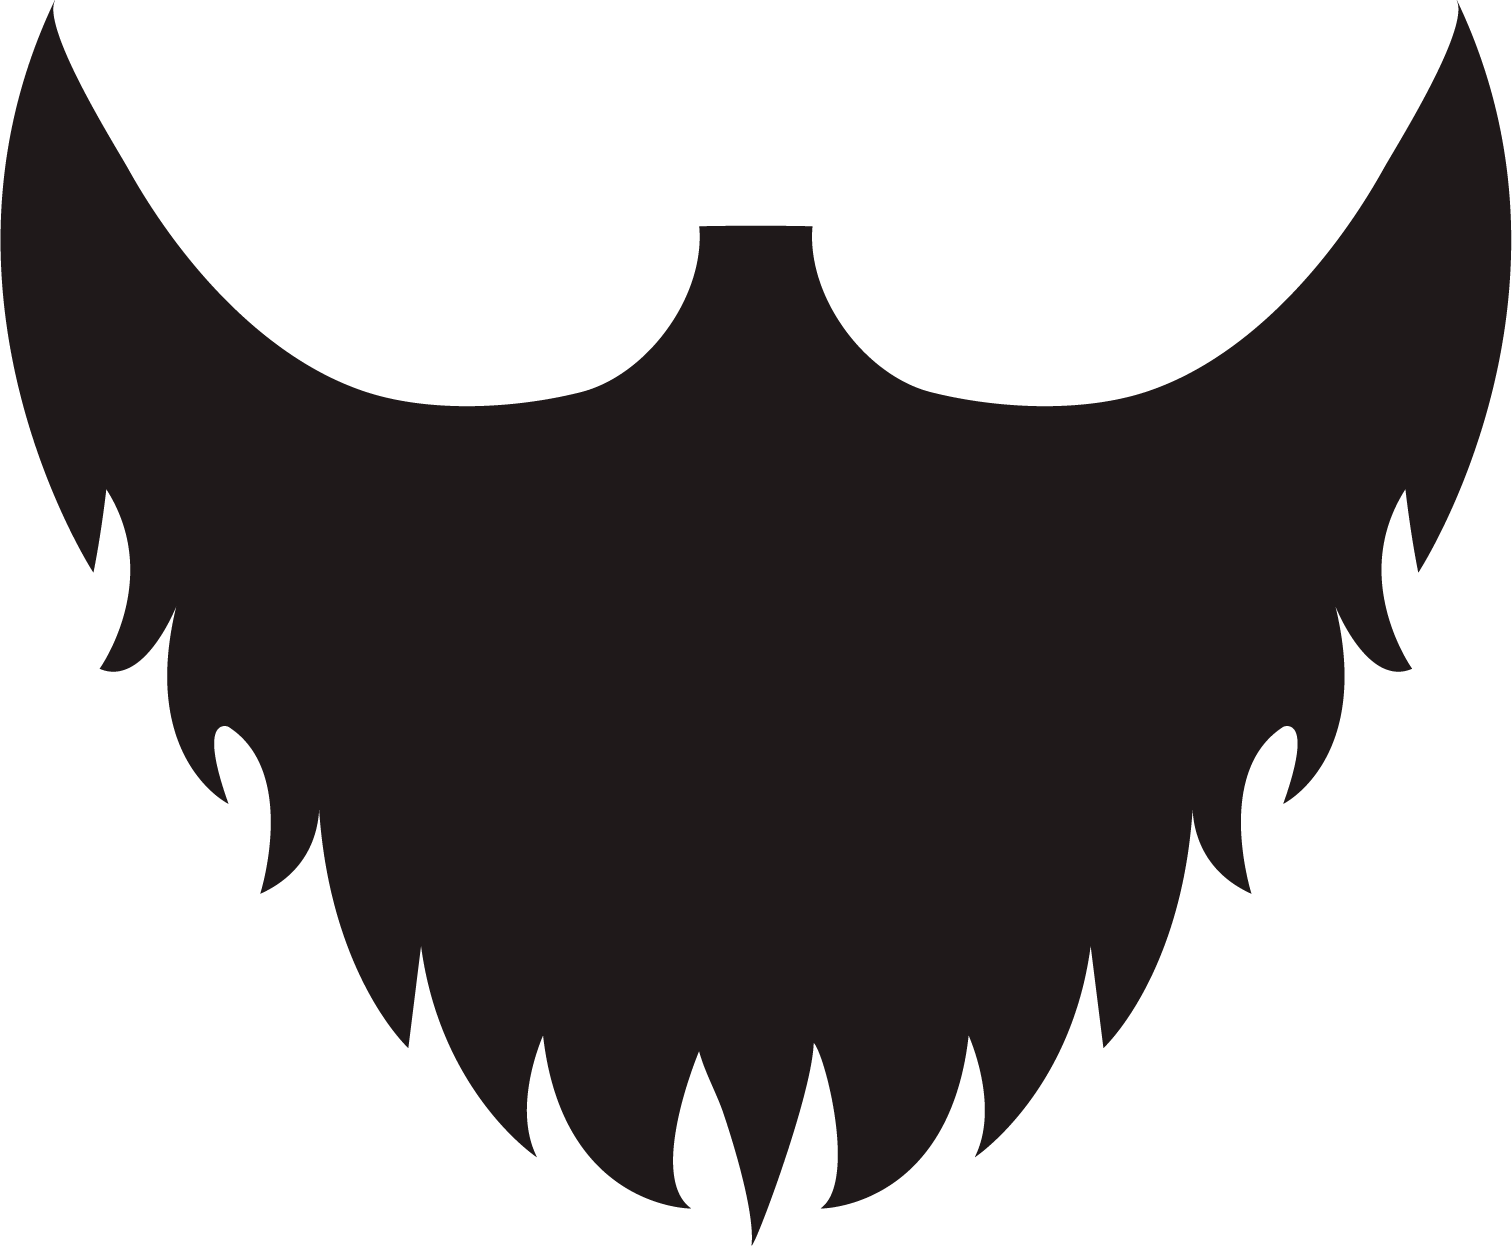 jpg library download Beard clipart small beard. Png transparent free images.